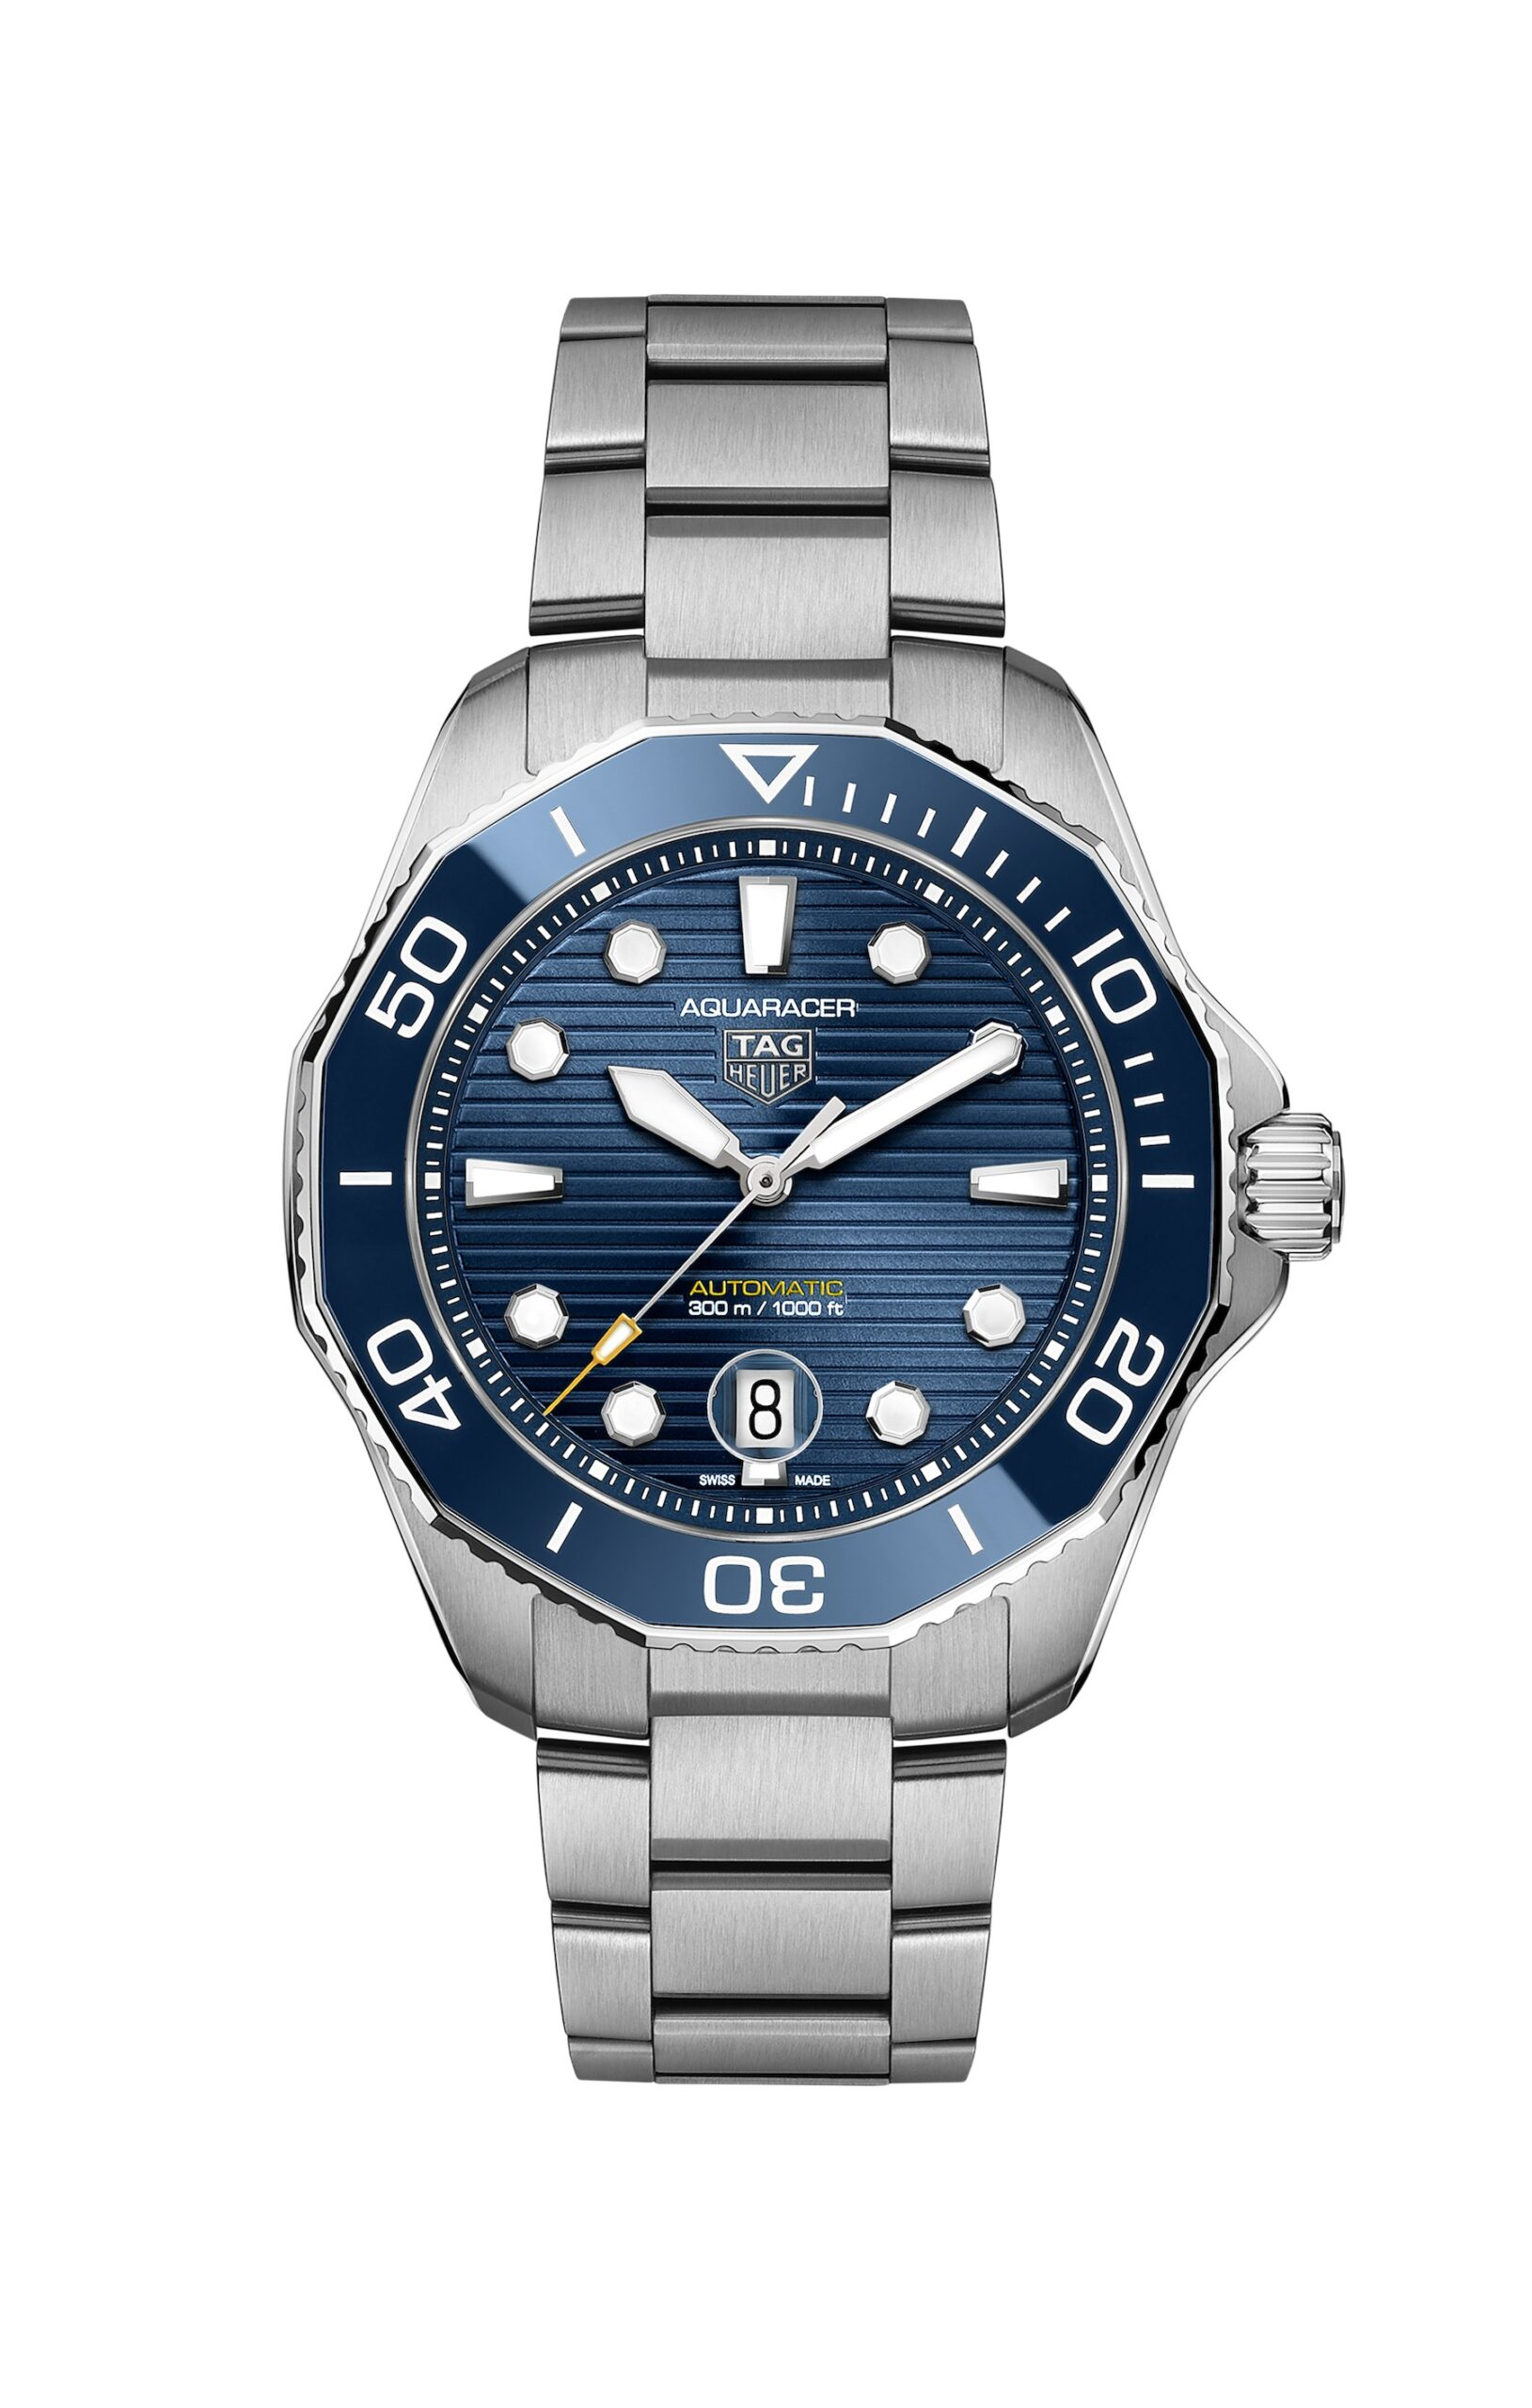 The Replica TAG Heuer Aquaracer 300 Professional Is Back